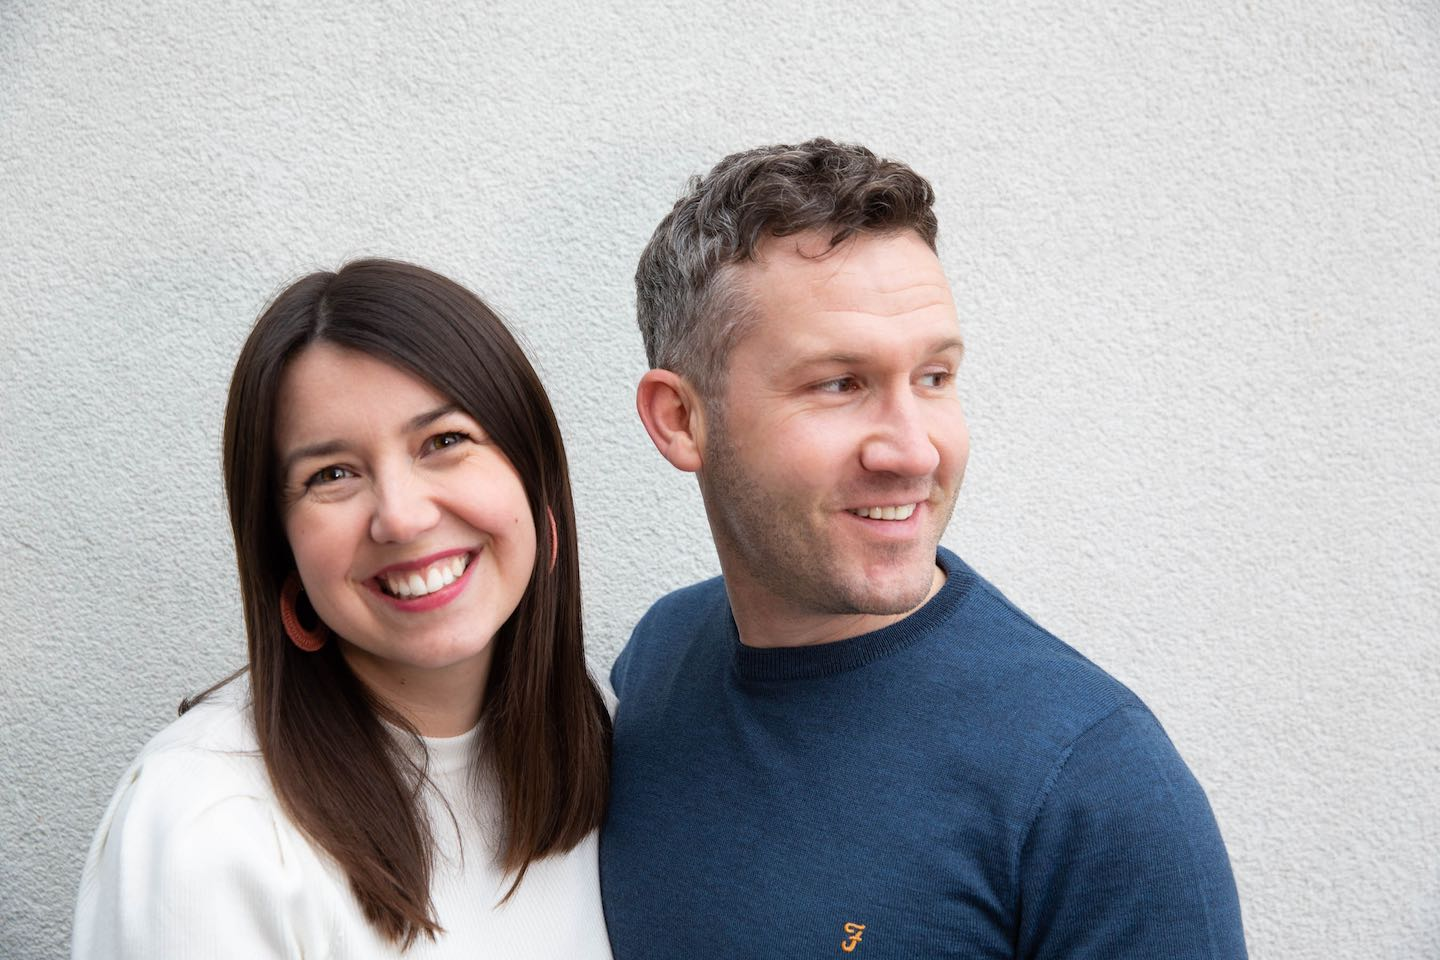 A picture of Joel & Hannah, owners of The English Meeting Room standing close together against a white wall.